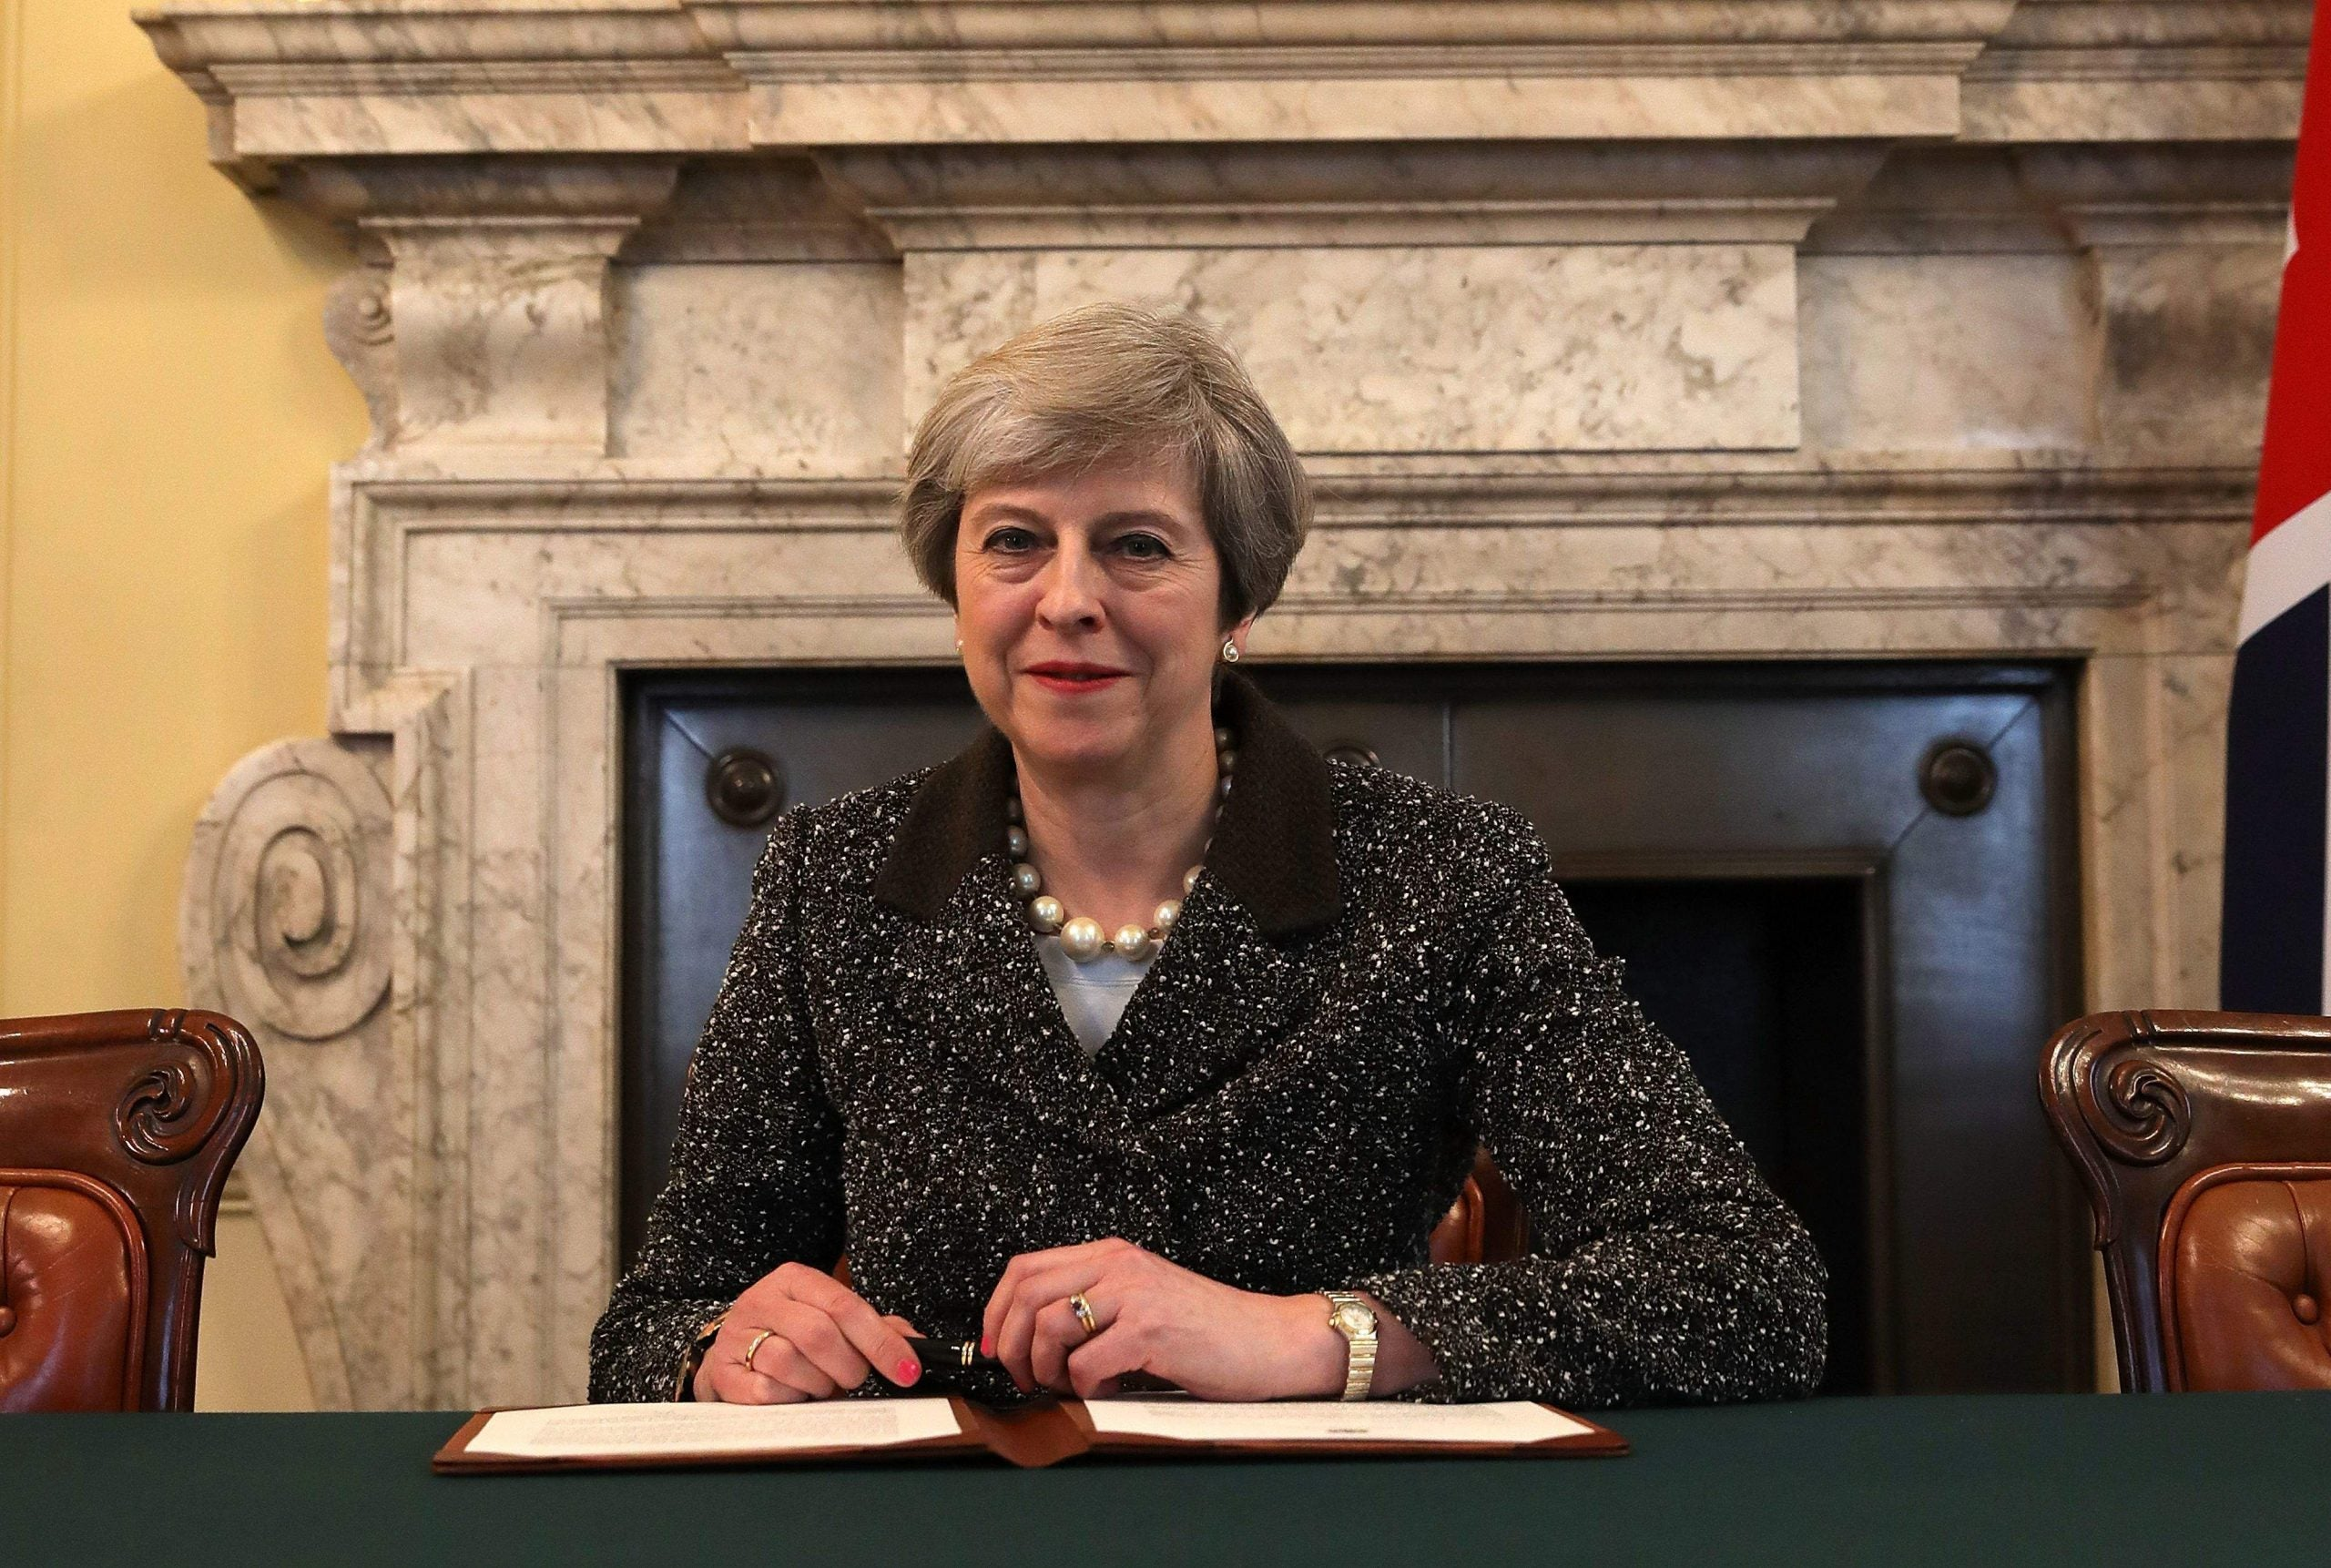 Melvyn Bragg: Once a Remainer, Theresa May has adopted the excessive zeal of a convert